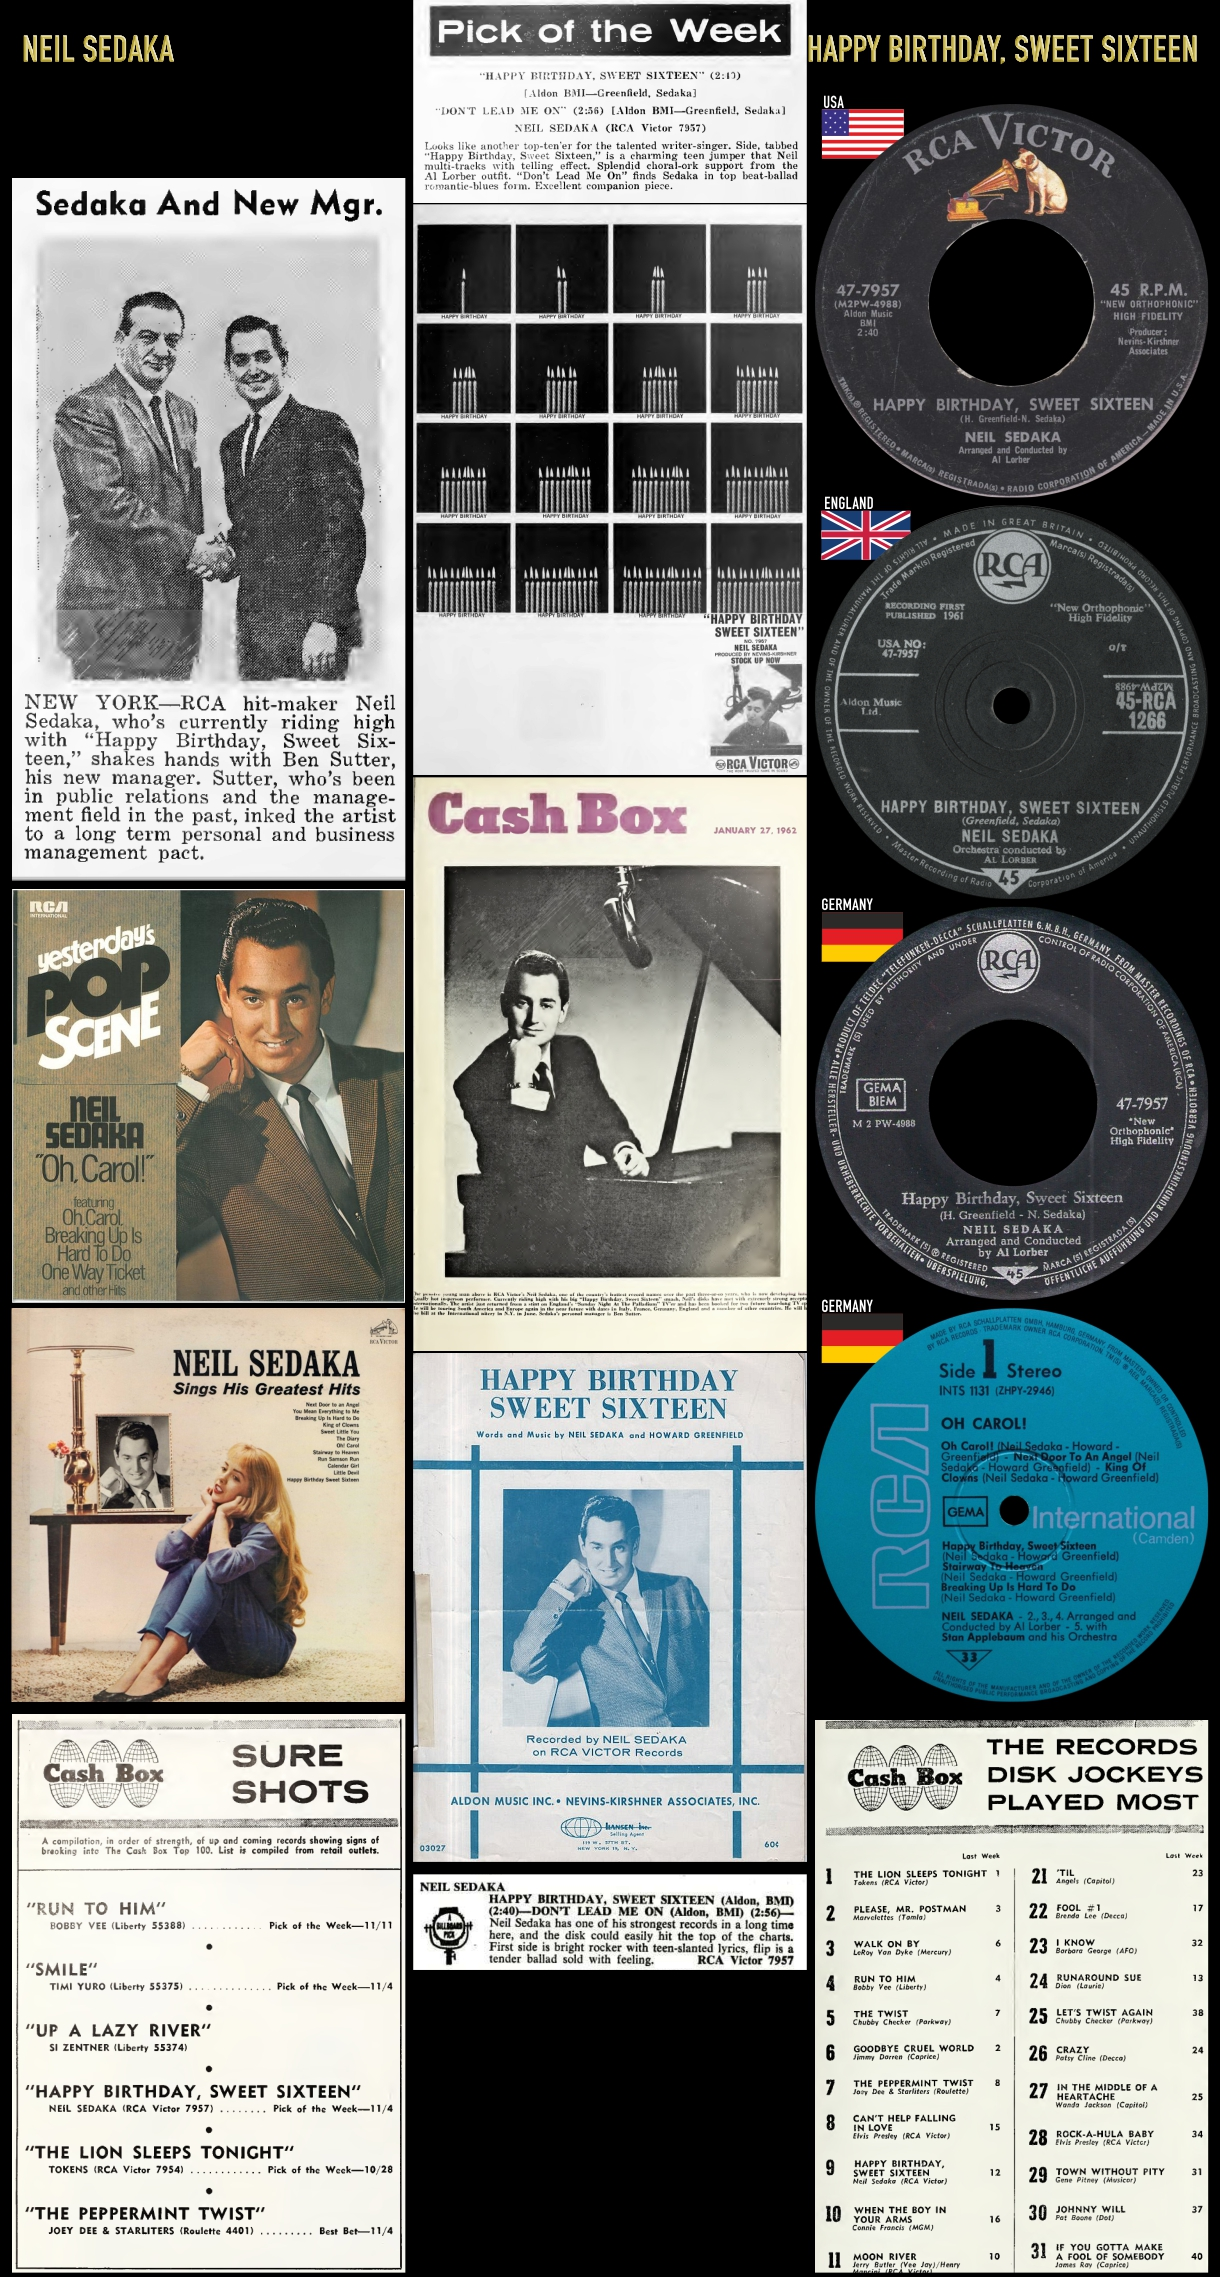 611111_Neil Sedaka_Happy Birthday, Sweet Sixteen